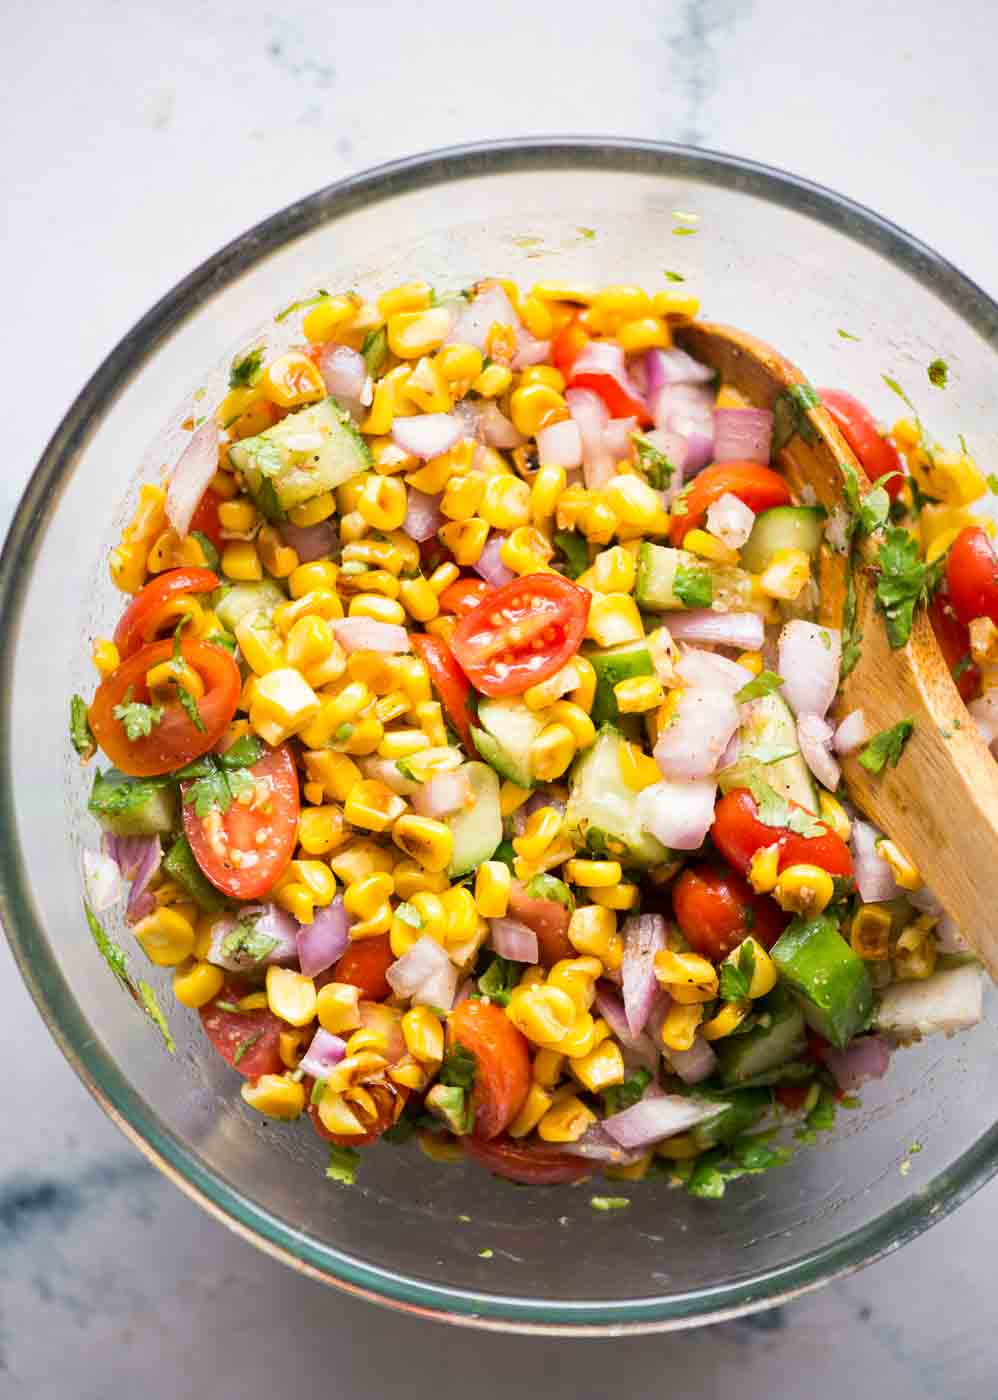 Fresh Roasted Corn Salad is packed with sweet corns, cucumber, tomato, onion and tossed in a lemony vinaigrette. Charred corn ads a lot of flavour to the salad. This quick salad is a perfect side dish in summer BBQs or for potlucks.